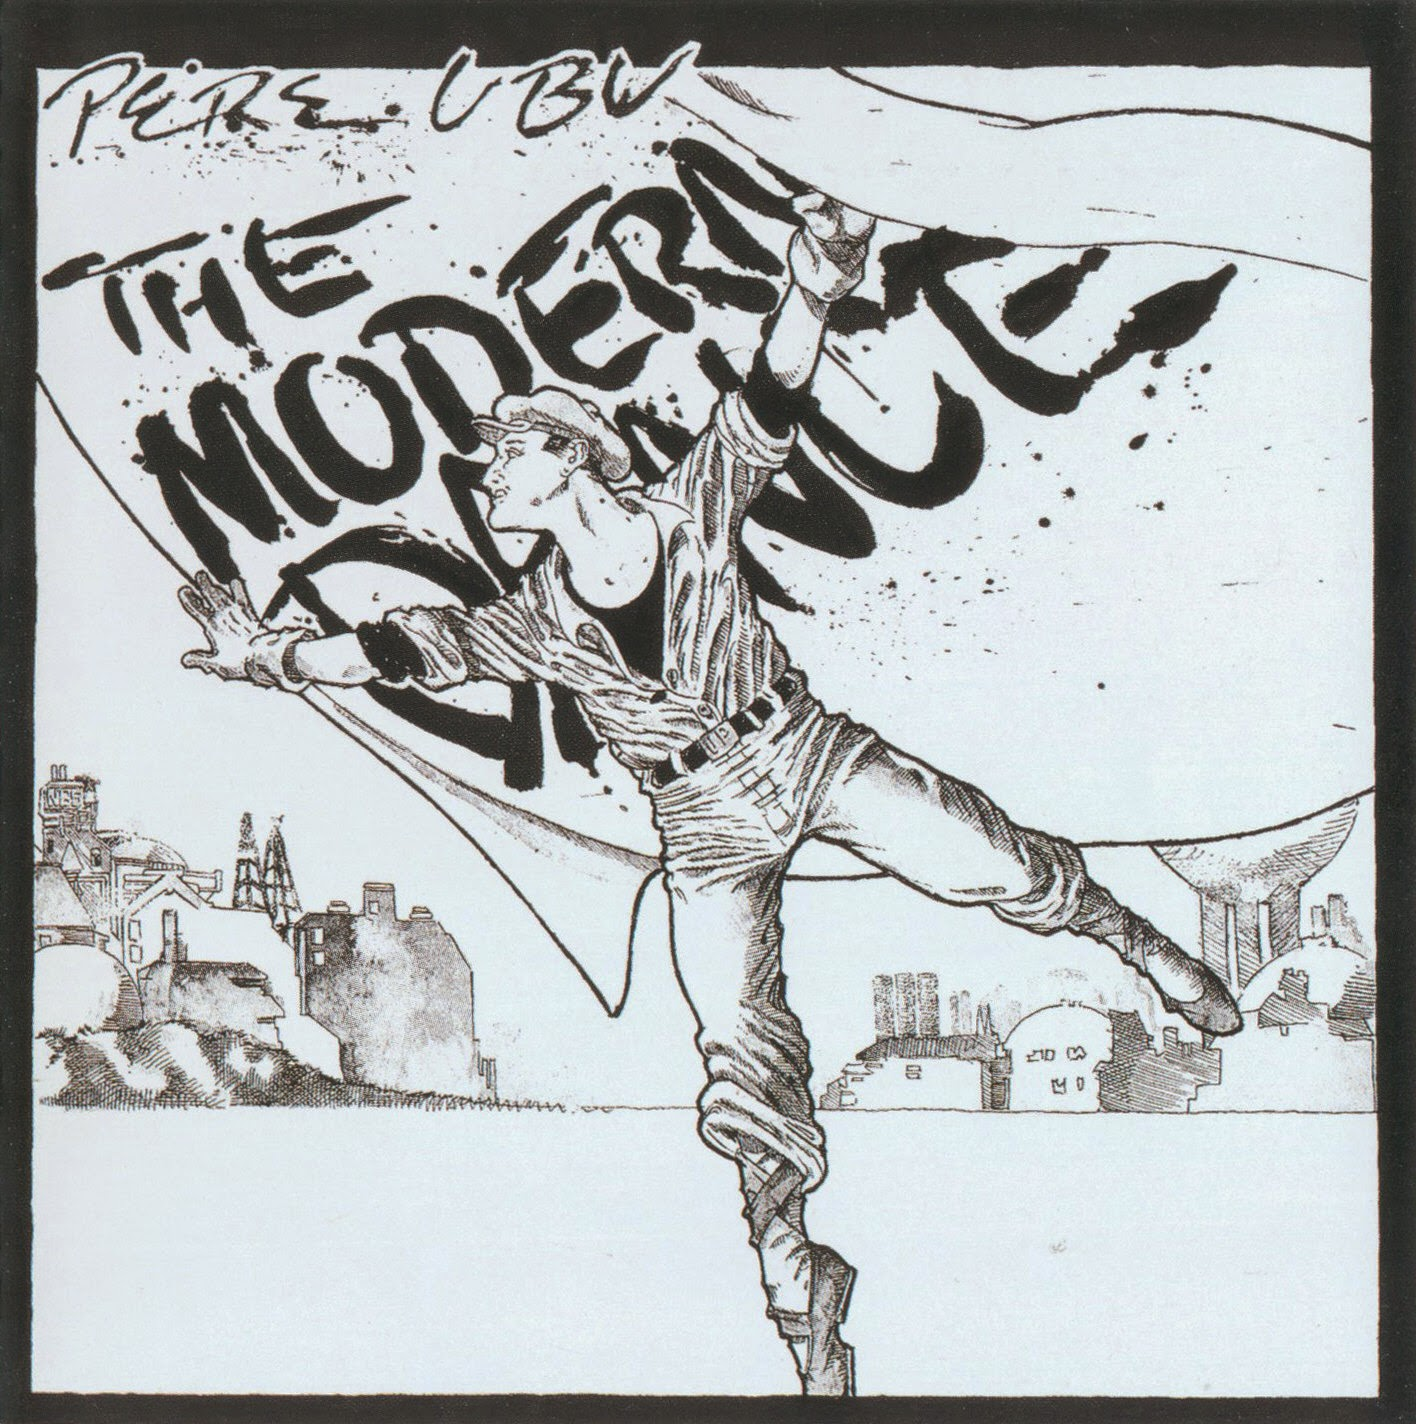 00i00 Pere Ubu David Thomas Flac Part 1